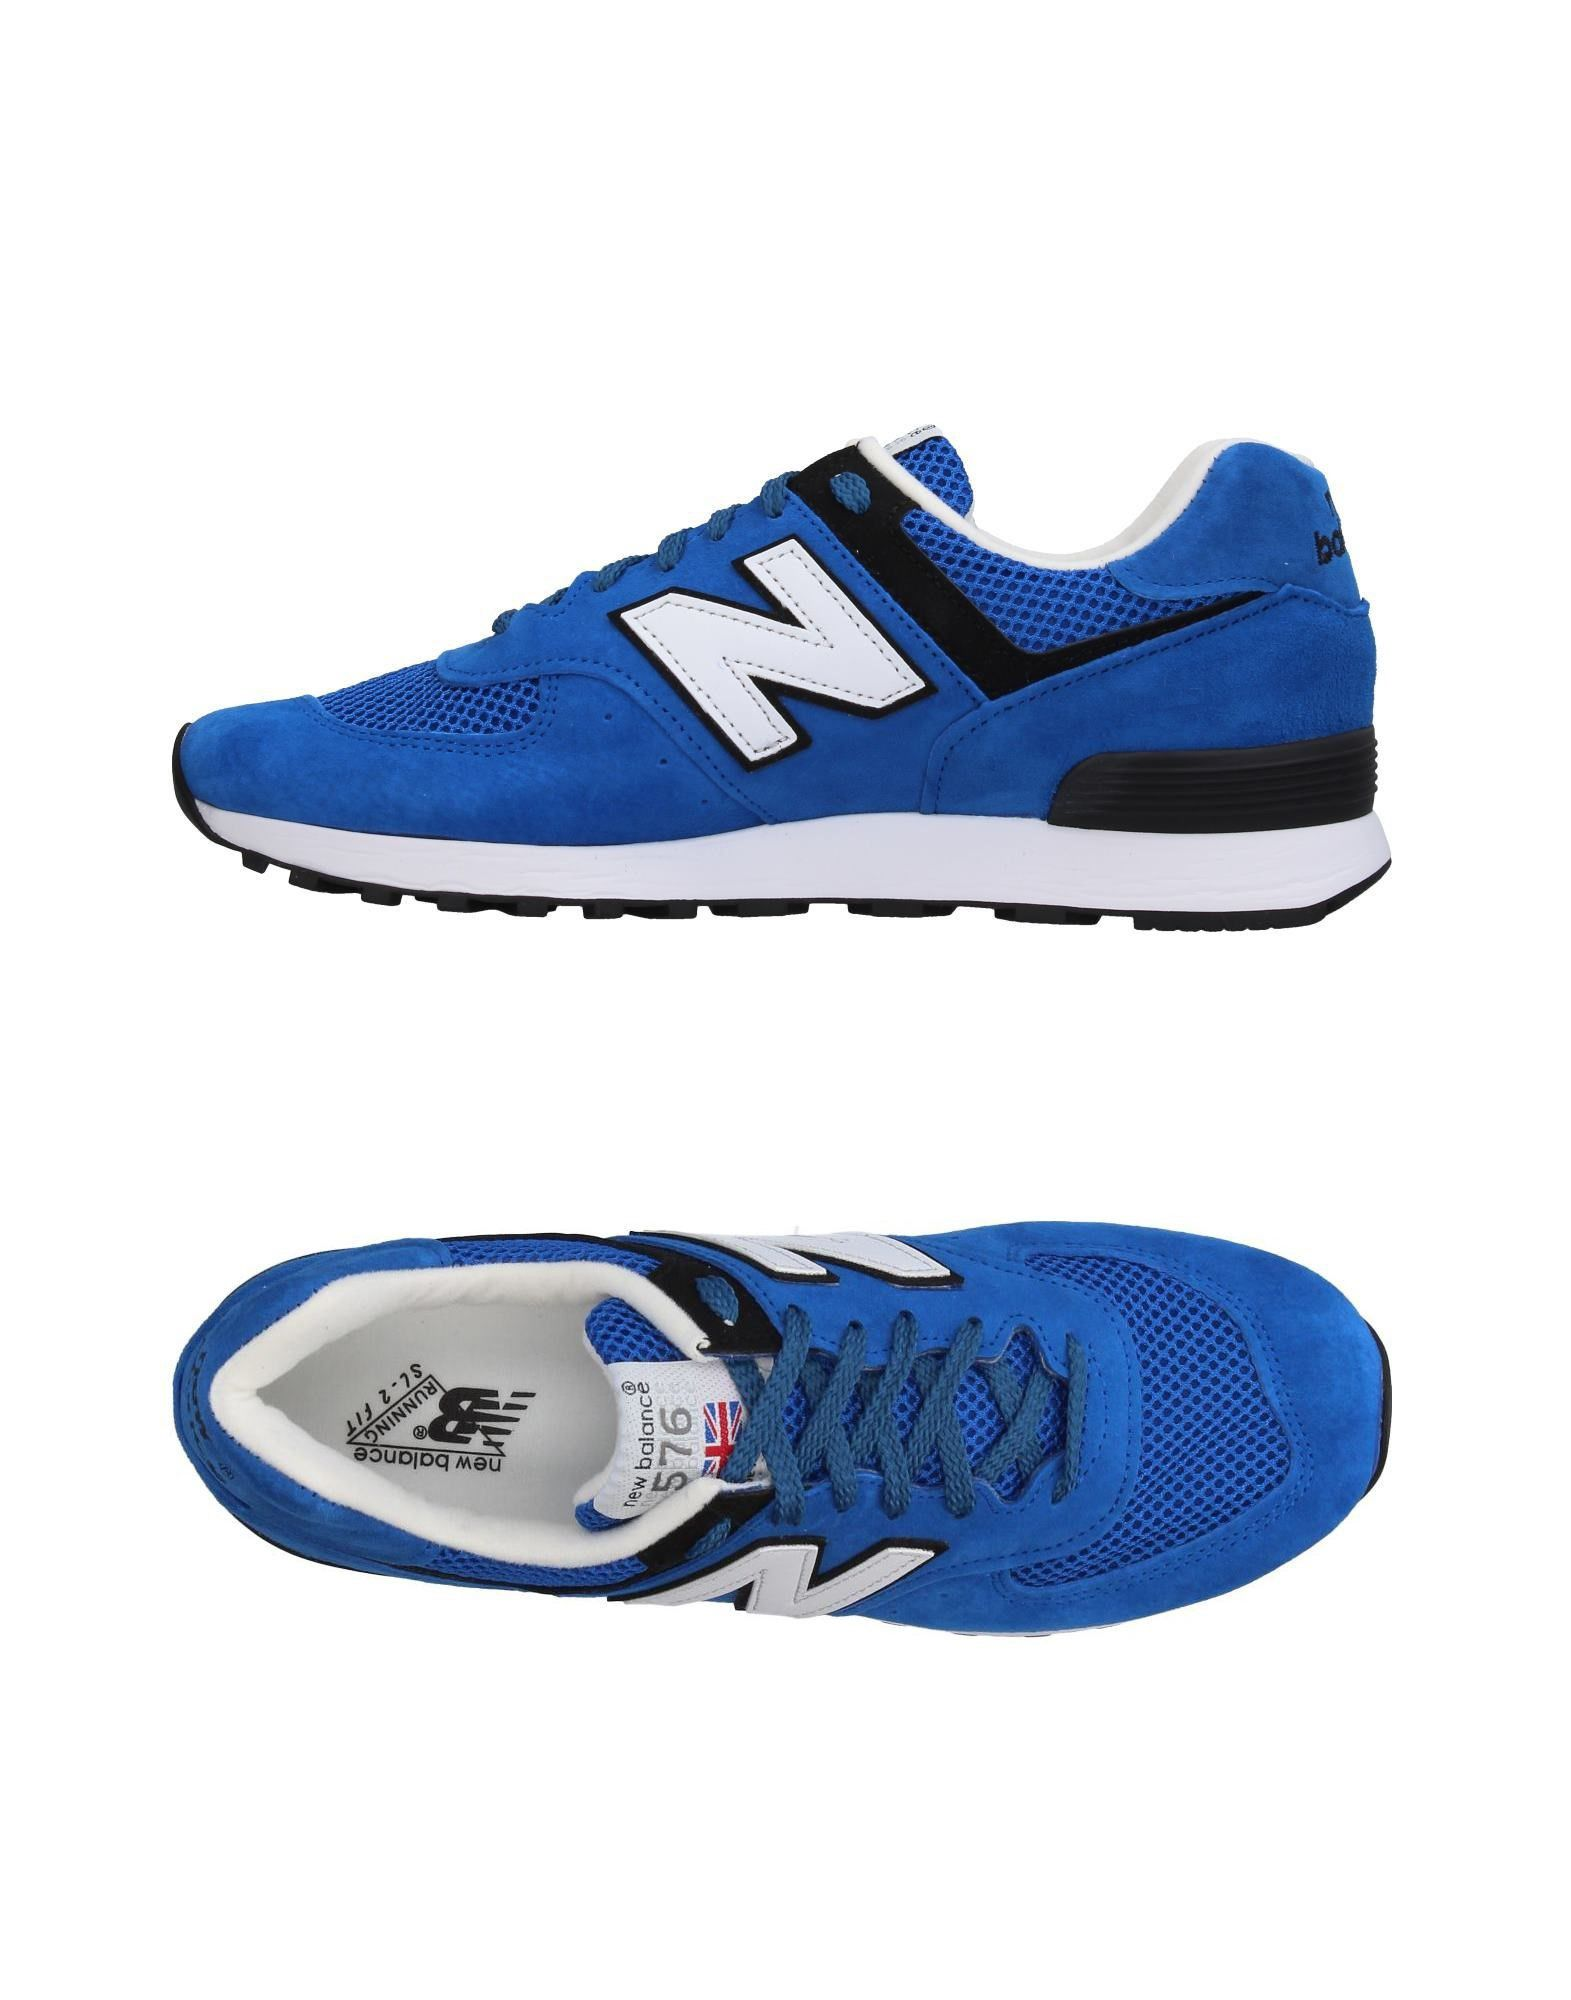 Sneakers New Balance Uomo - Acquista online su